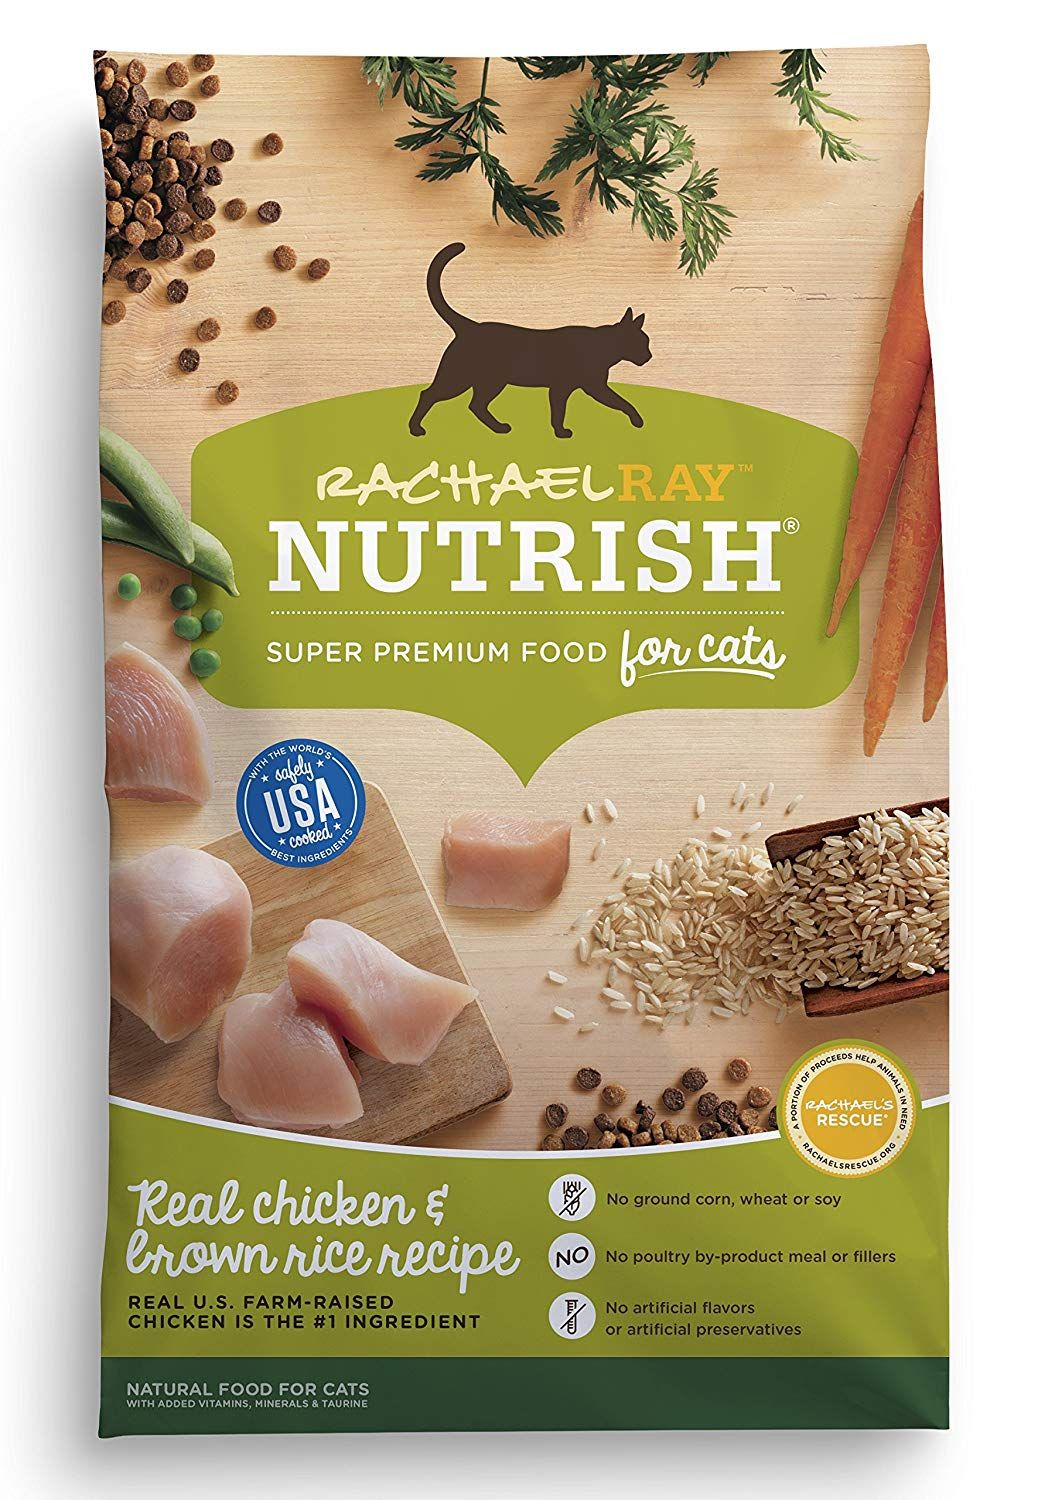 Rachael Ray Nutrish Natural Dry Cat Food Check This Awesome